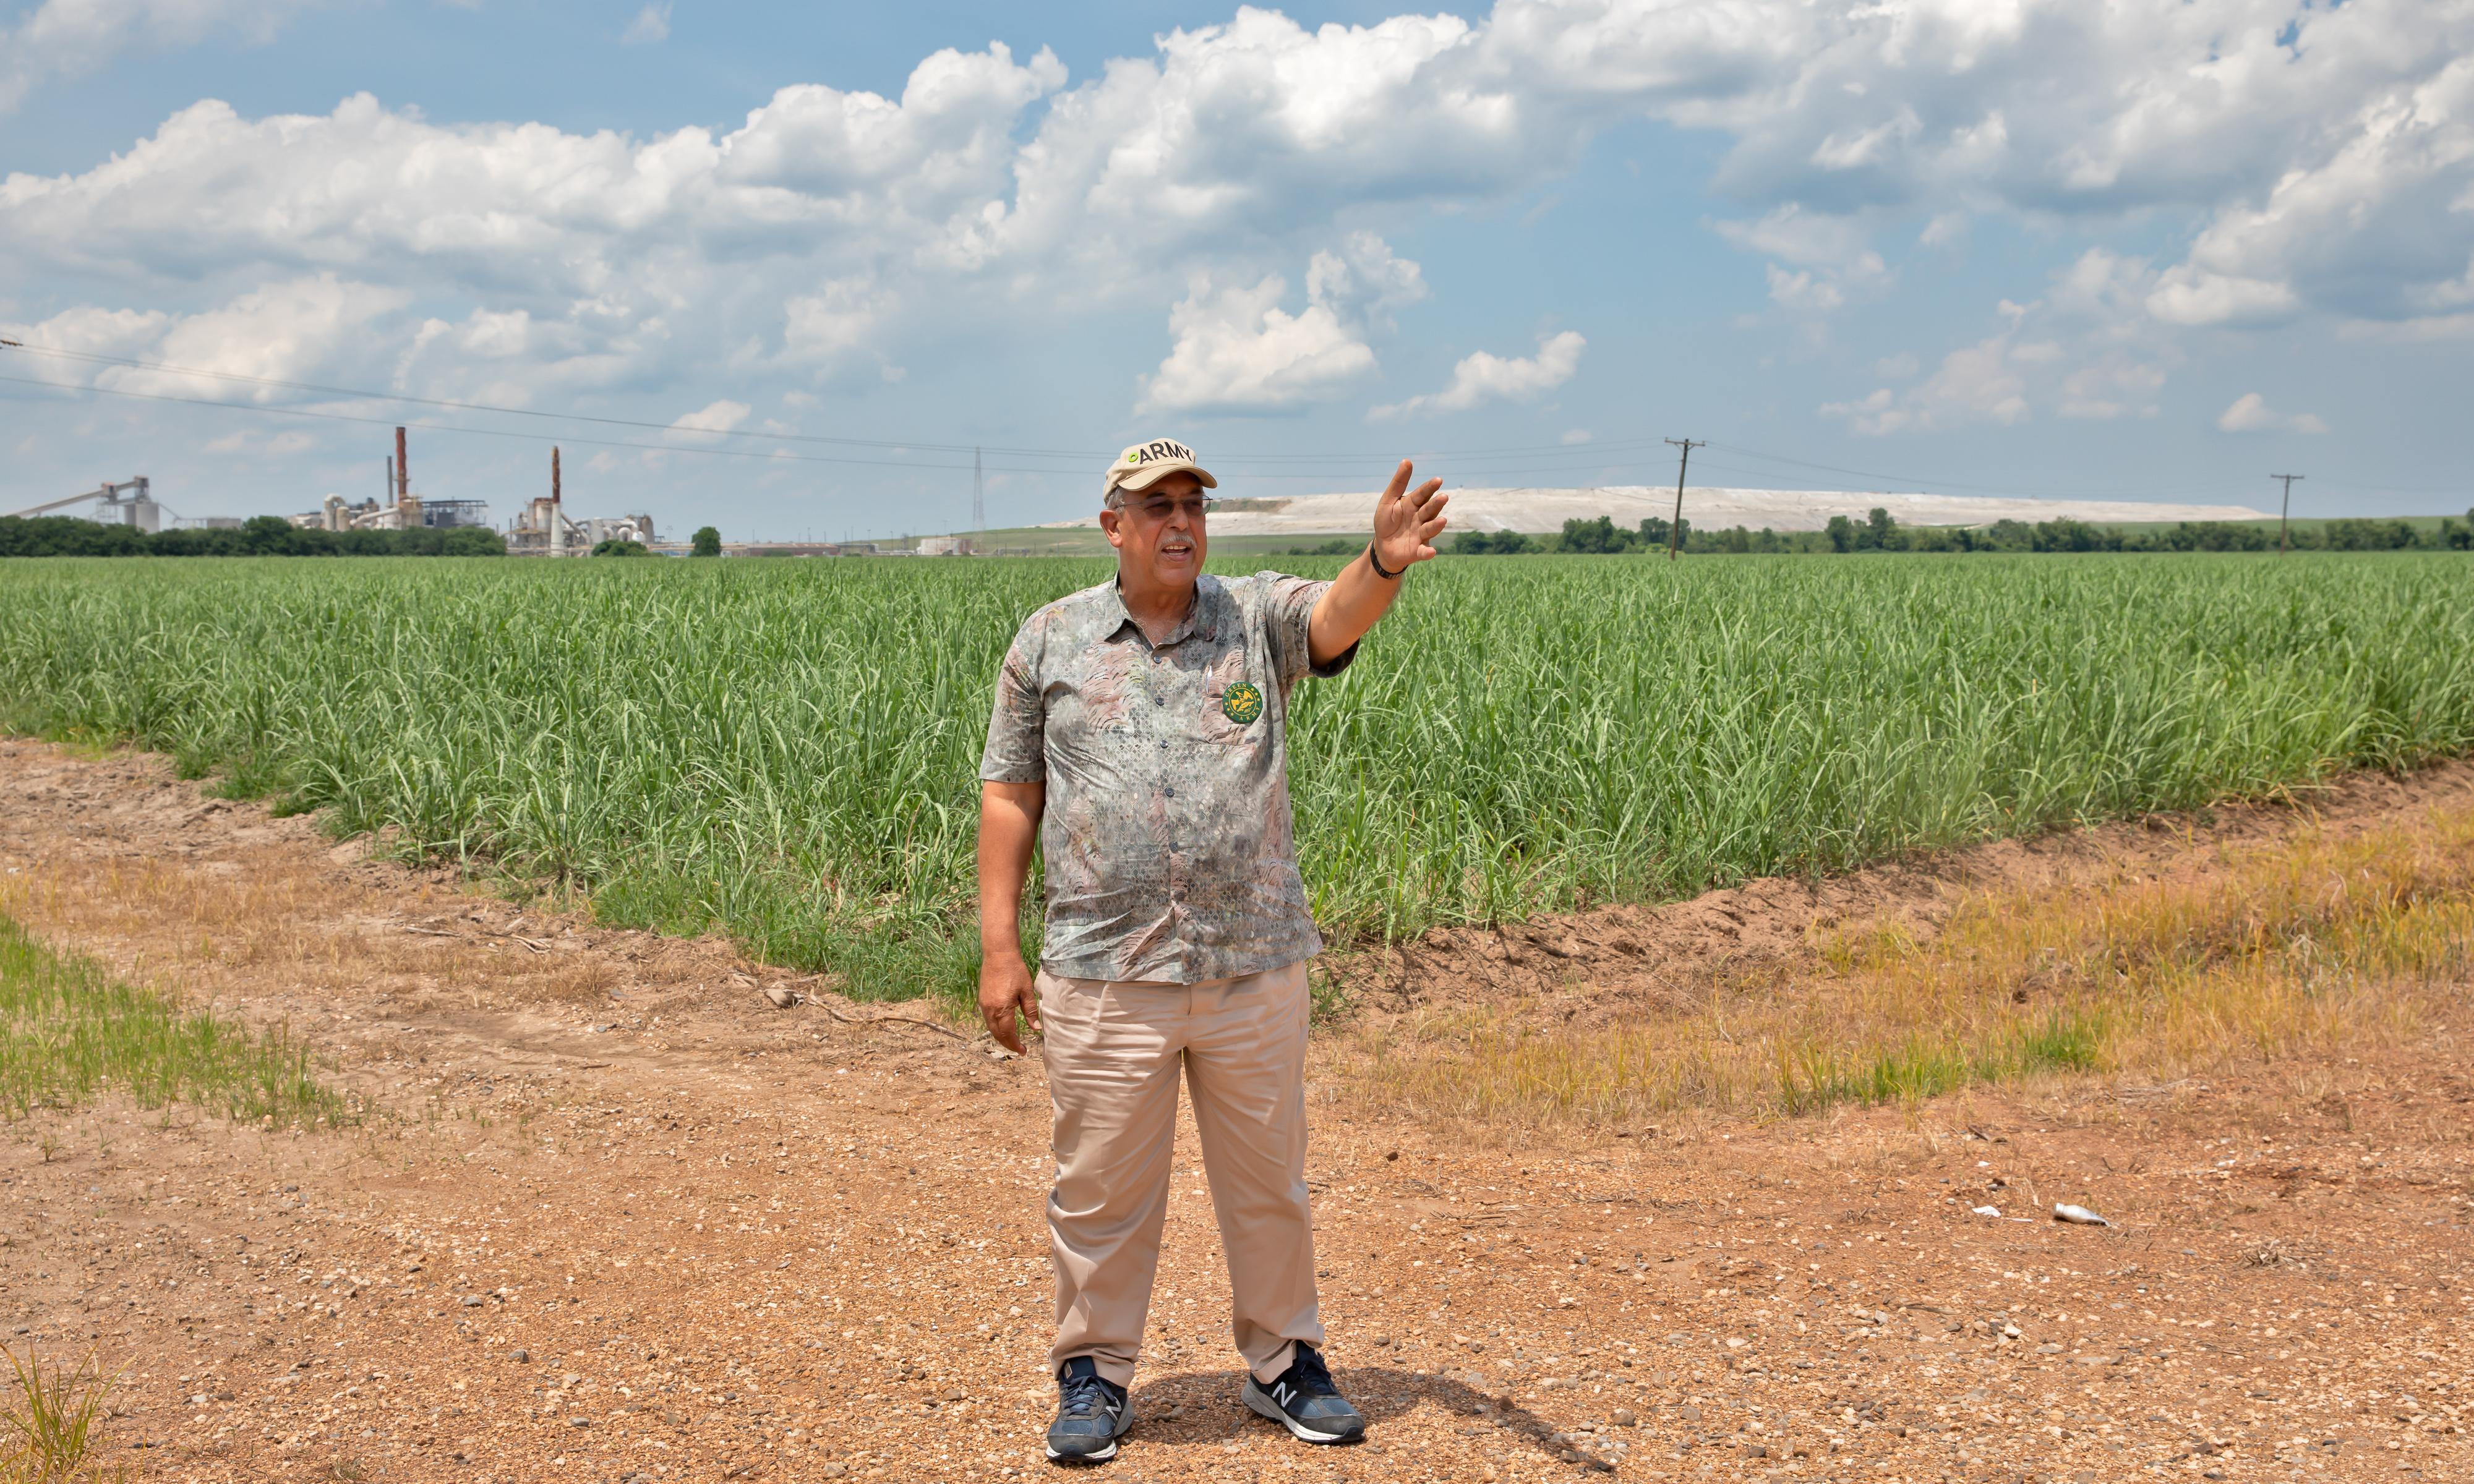 He's a Gulf War vet who stepped up during Katrina. Now he's an environmental crusader